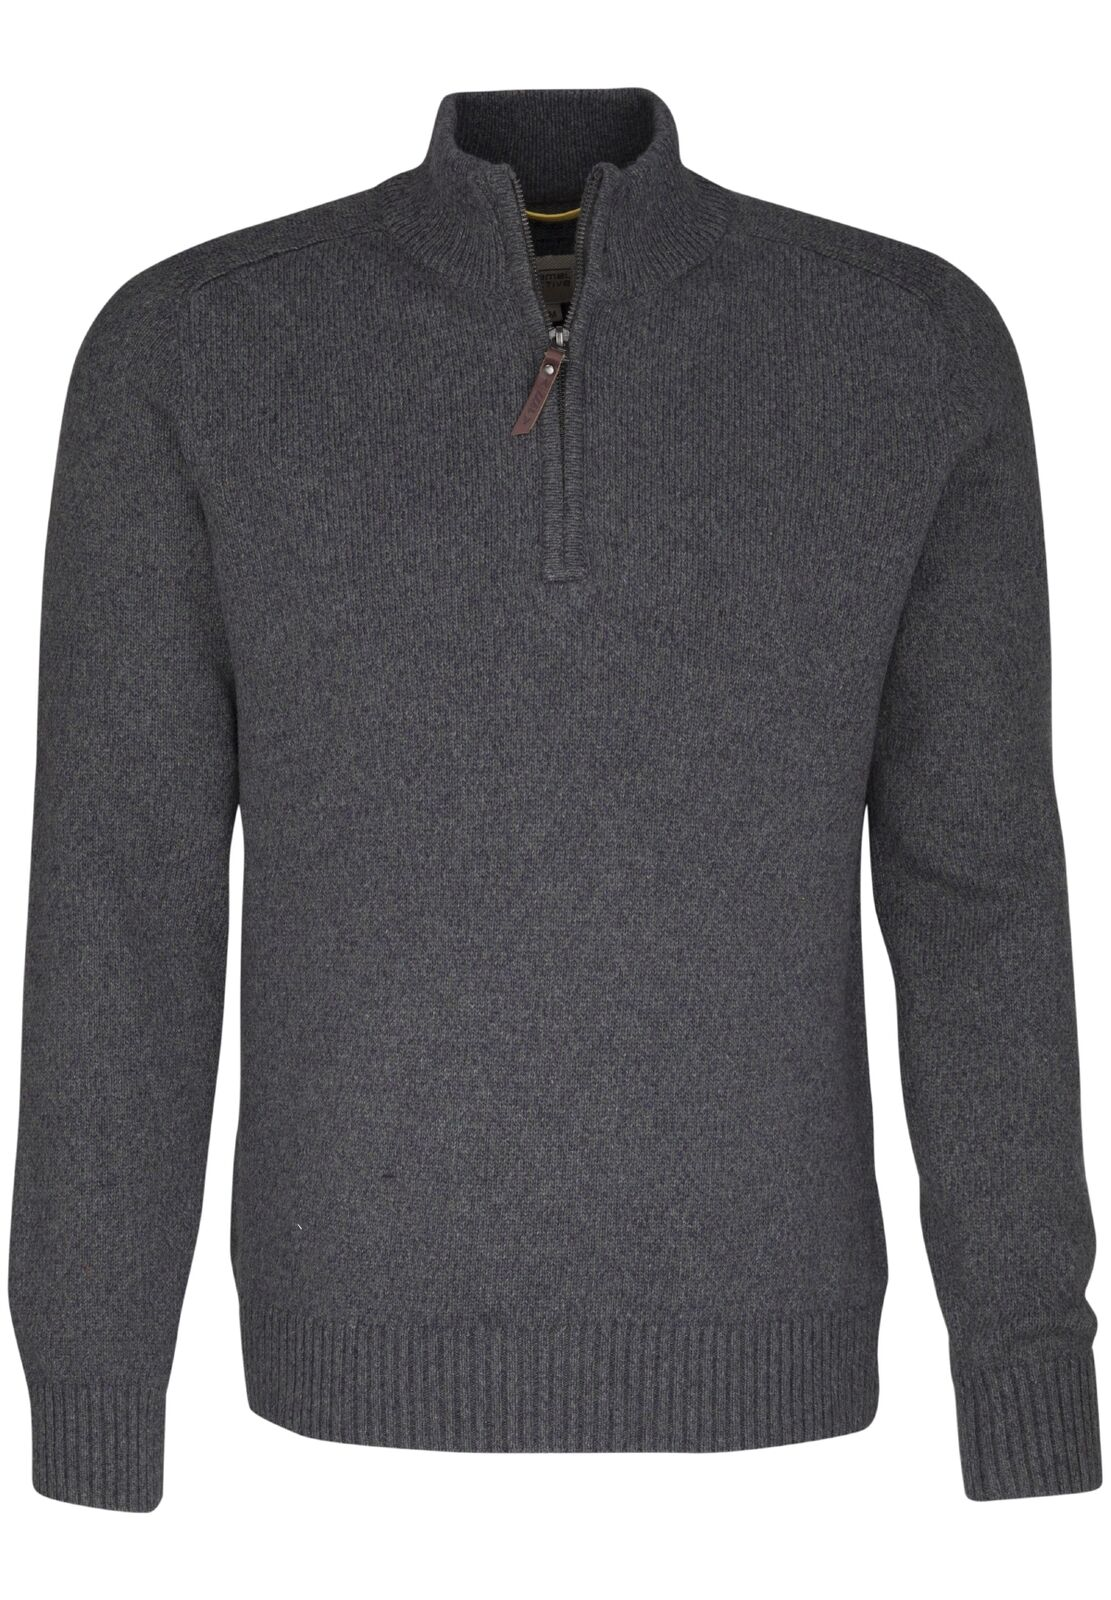 CAMEL Active Uomo Stand-Up Pullover, verde, 444533 71, 71, 71, NUOVO b6e5d2